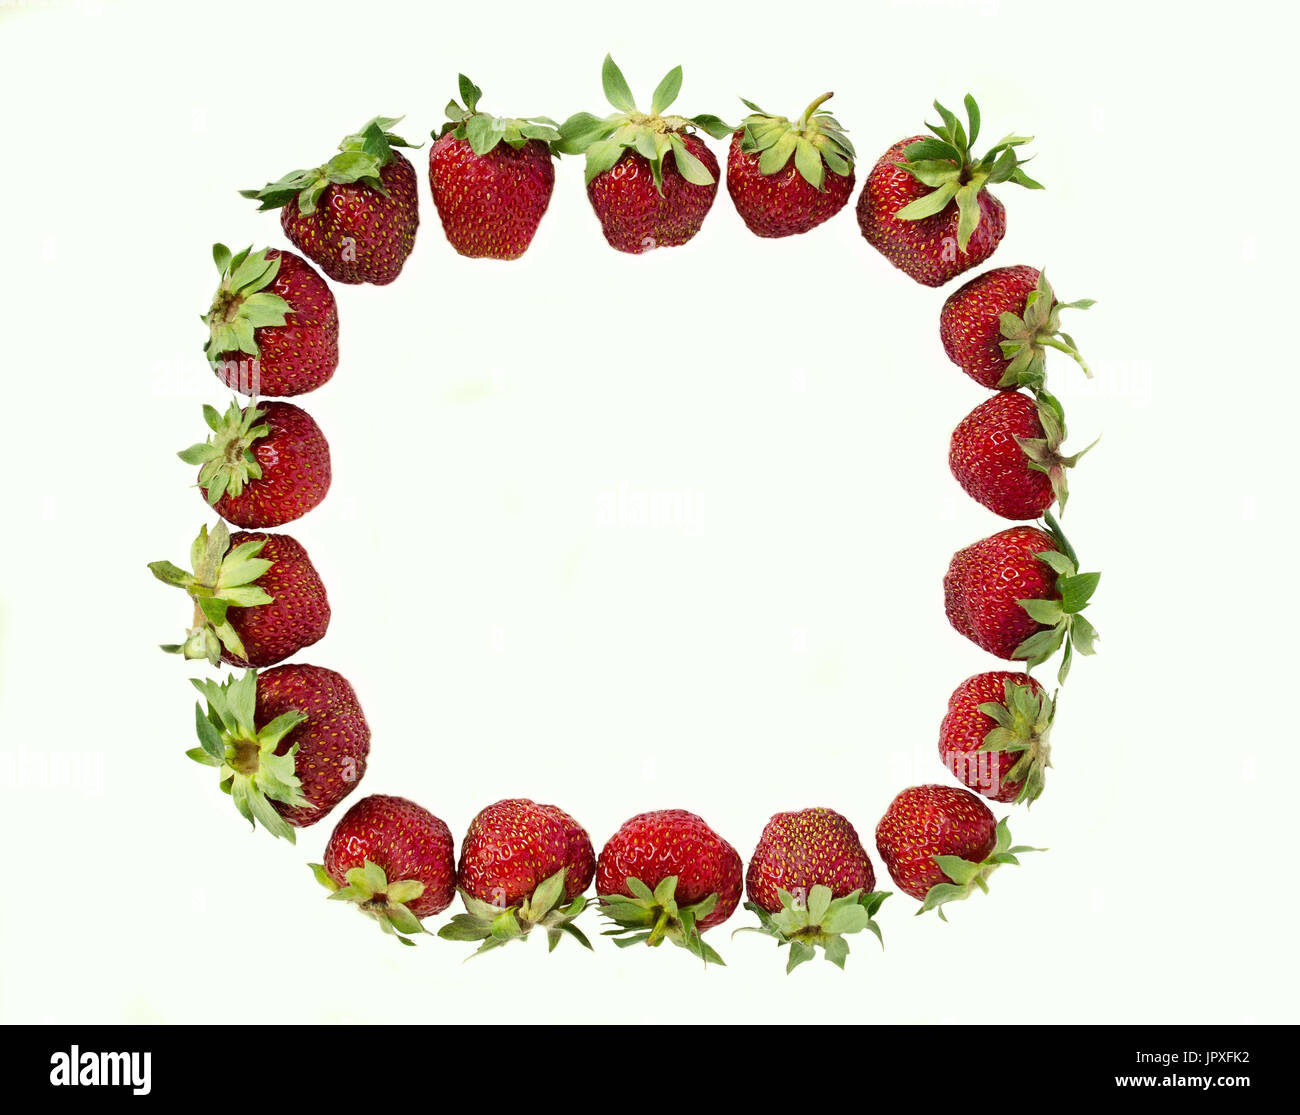 A strawberry frame on a white background. Isolate. Copy space. - Stock Image